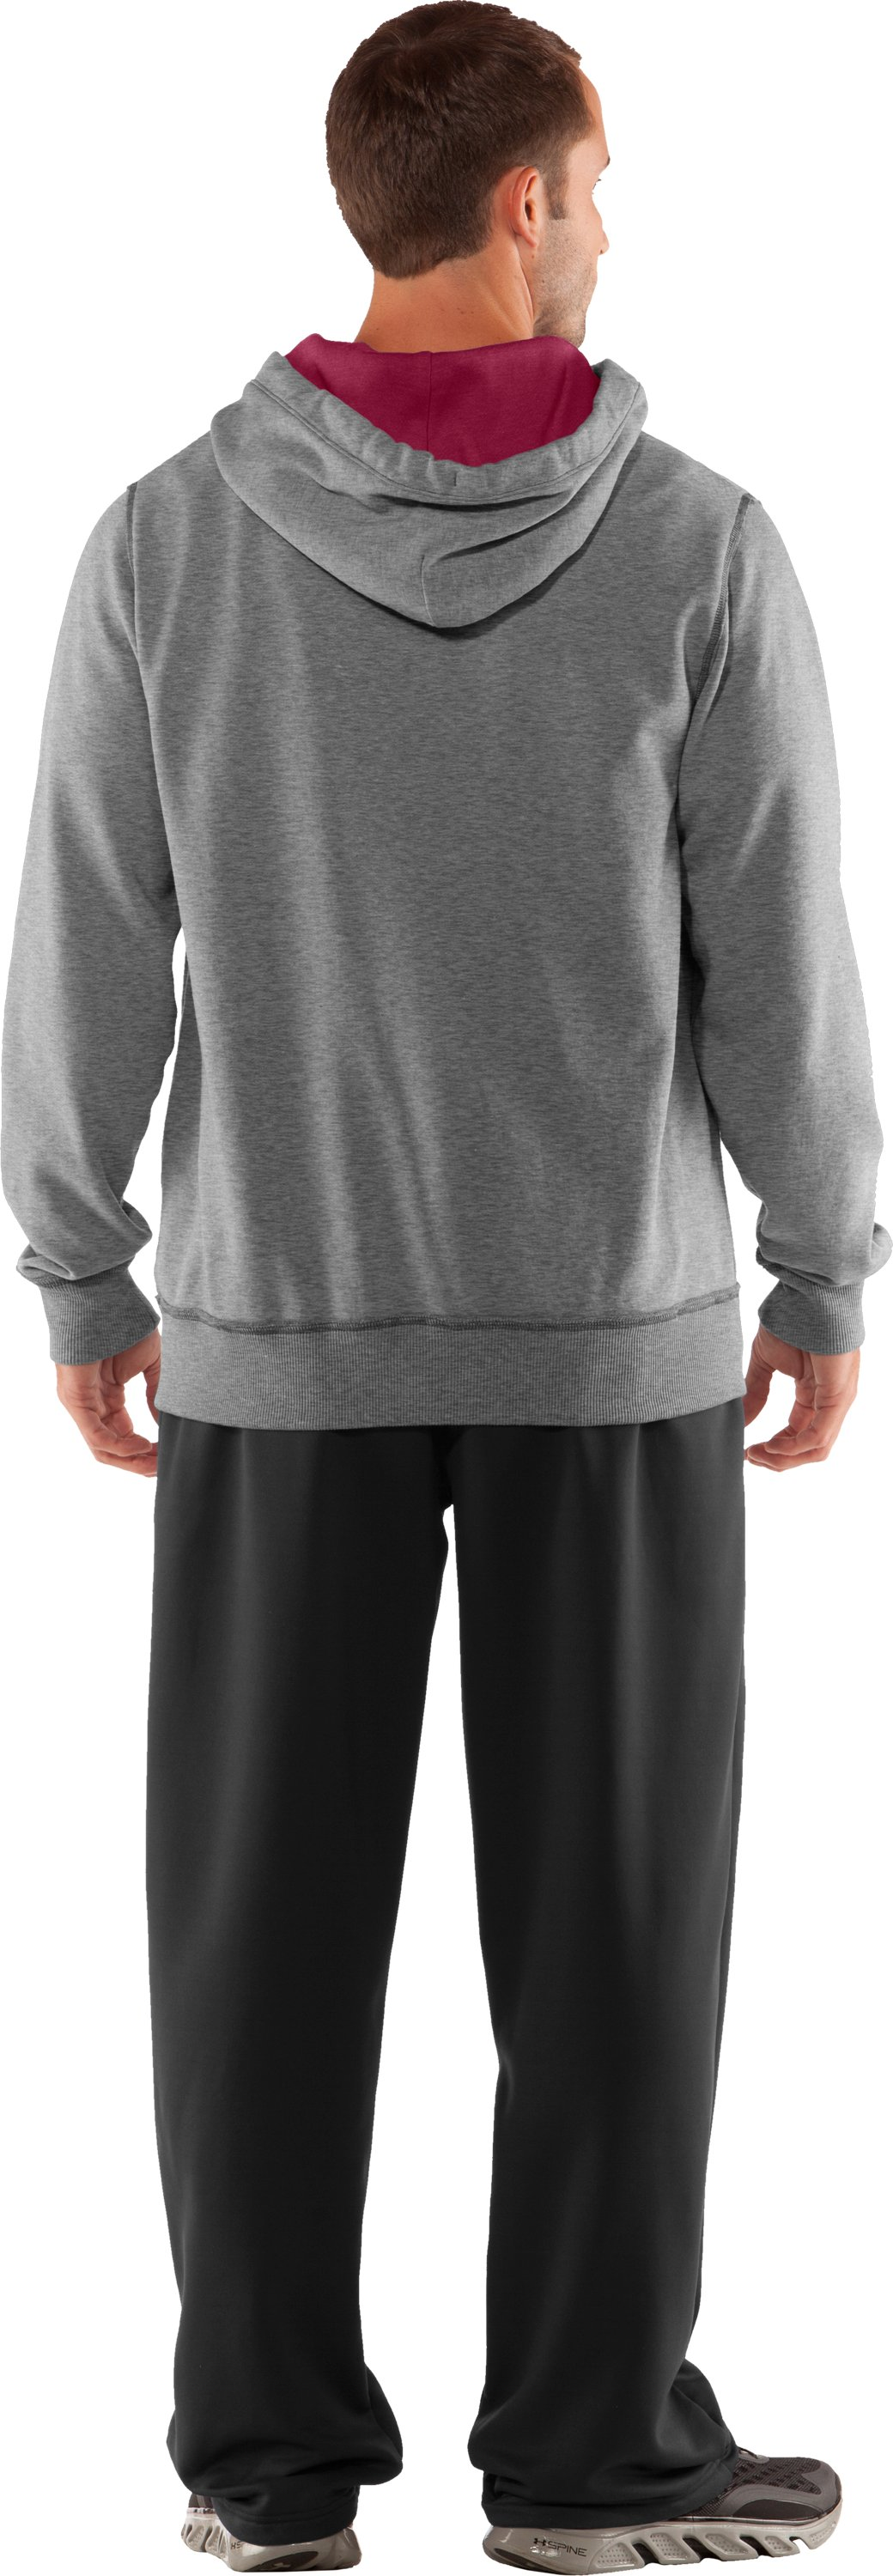 Men's Temple Under Armour® Legacy Hoodie, True Gray Heather, Back